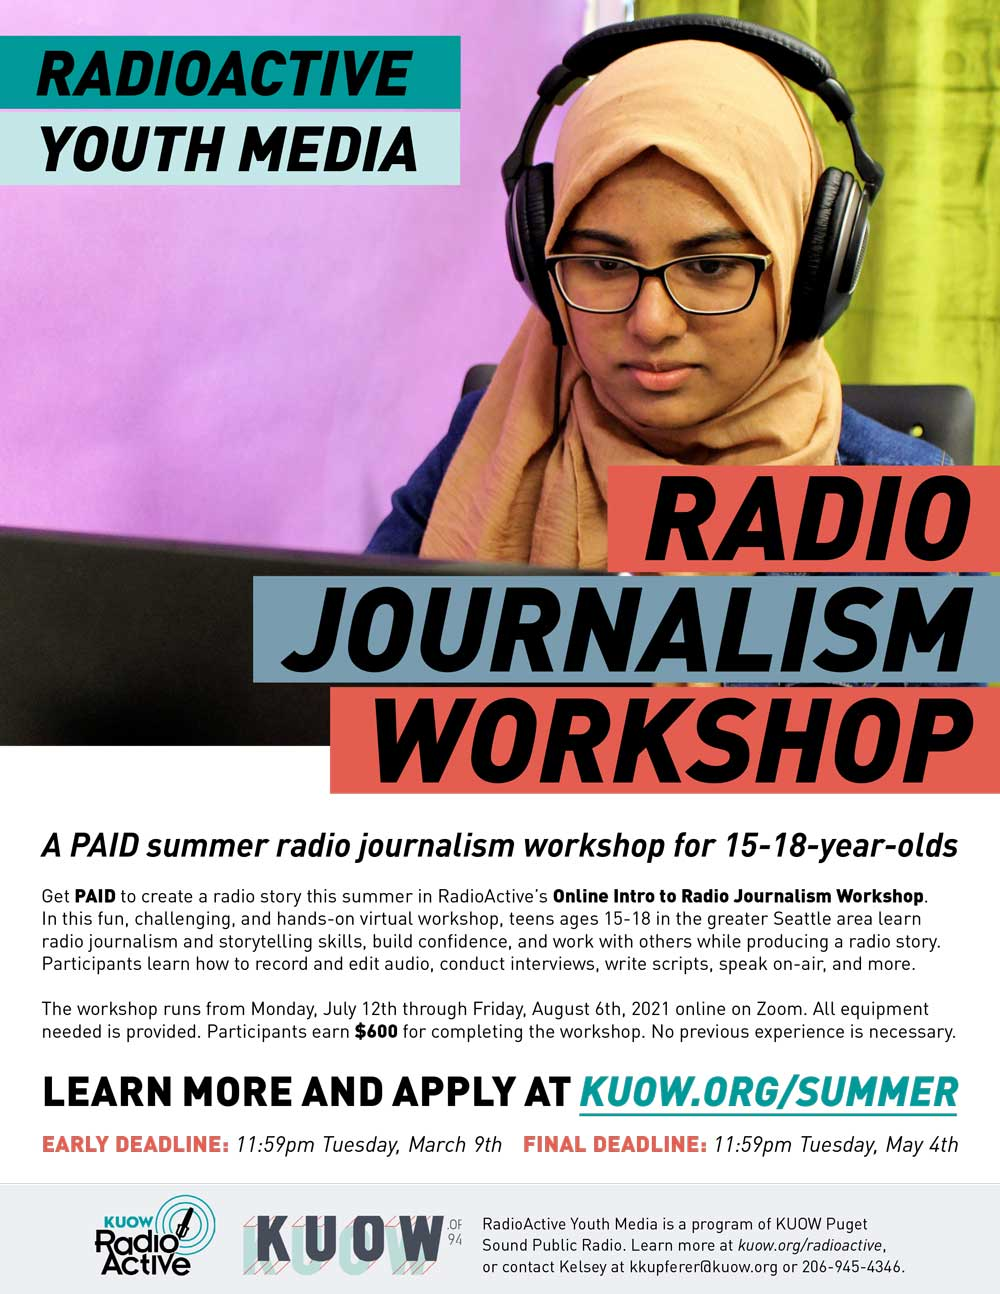 Flyer for KUOW's Radioactive youth journalism workshop